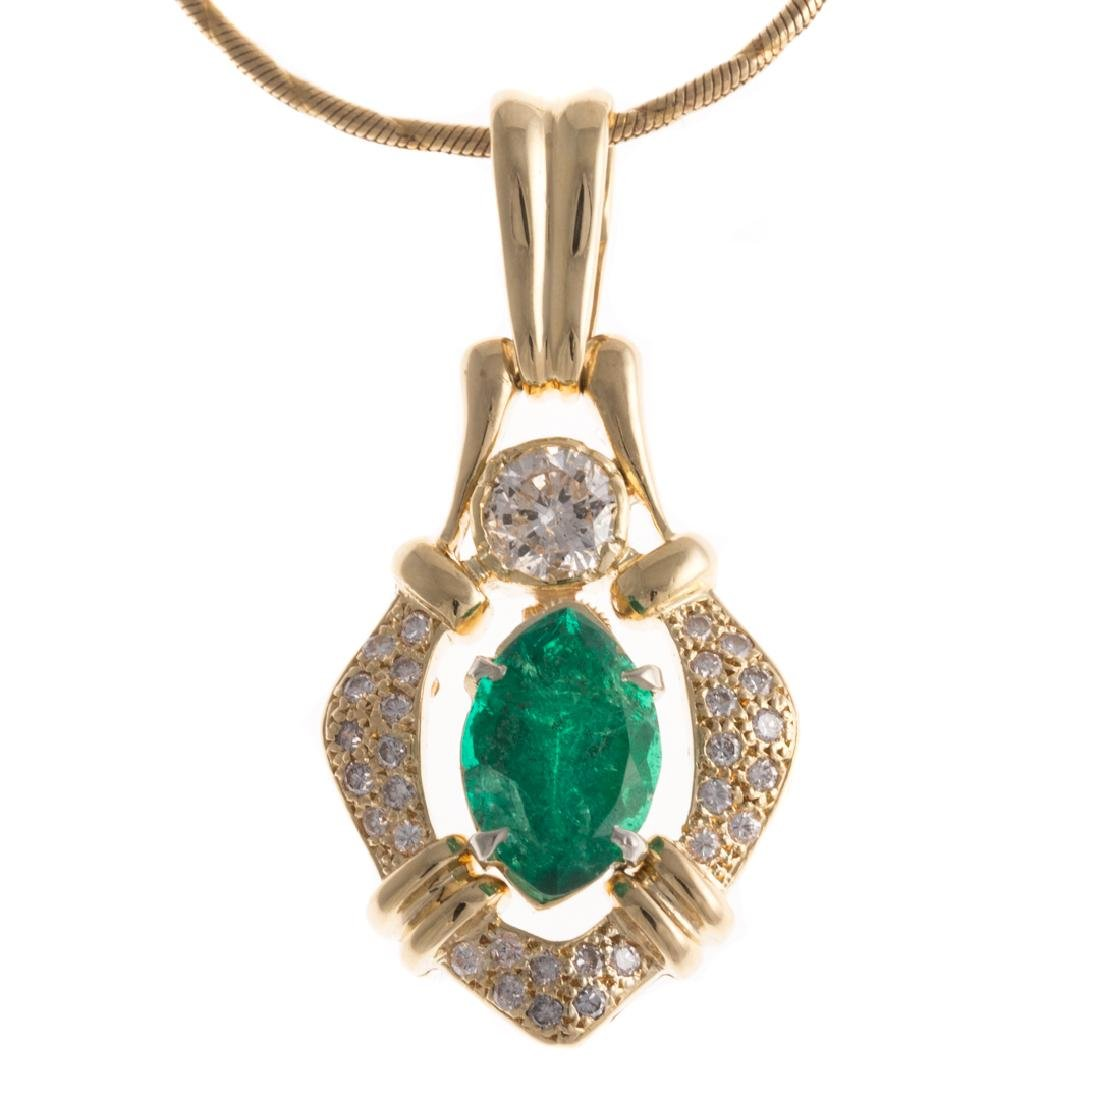 A Lady's Emerald and Diamond Necklace in Gold